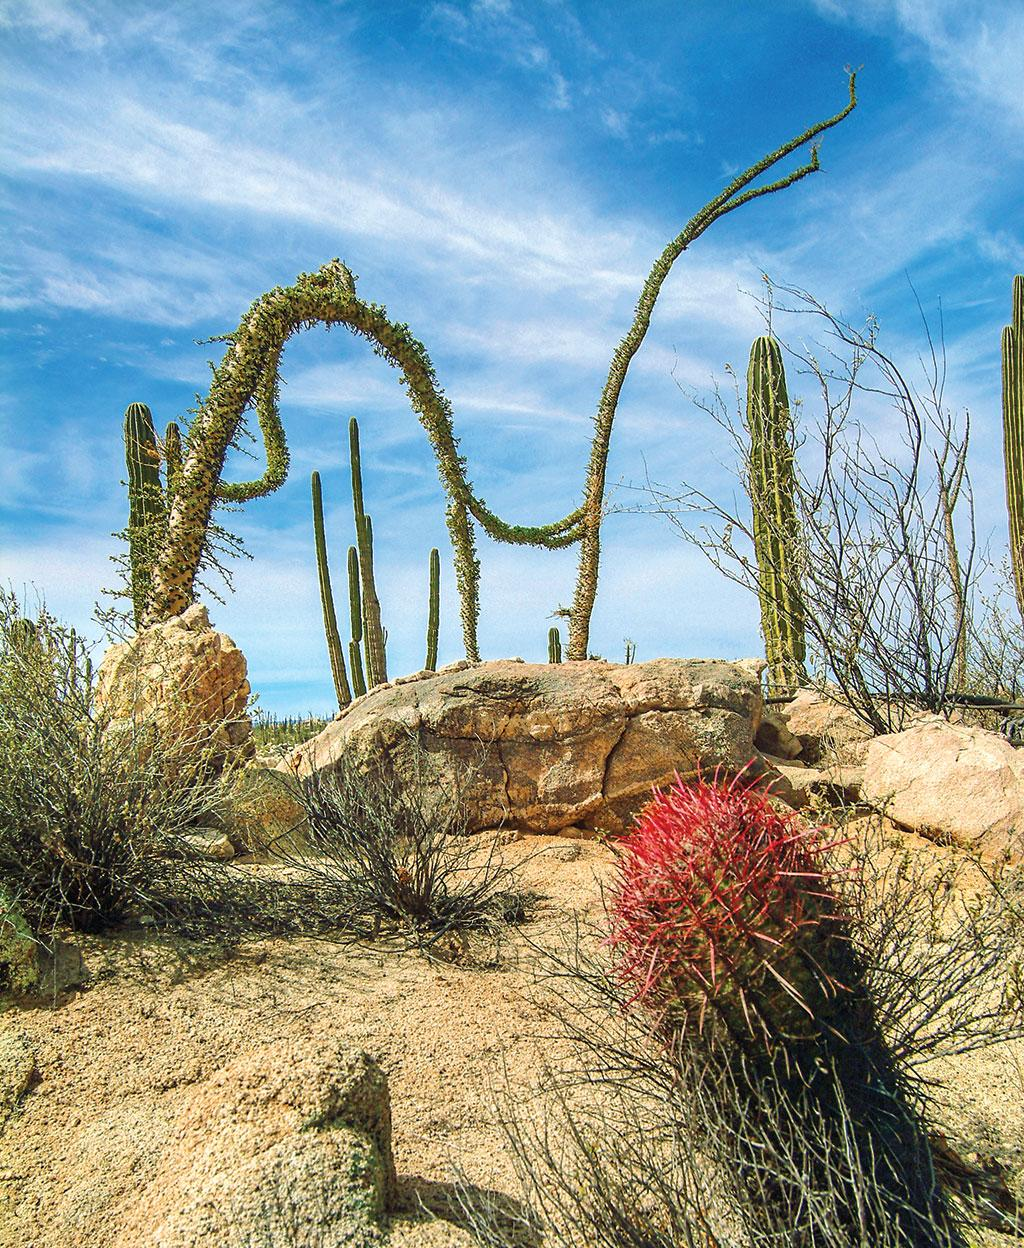 Boojum cactus of the Sonoran desert in North America takes unique shapes due to its spongy trunk that stores water